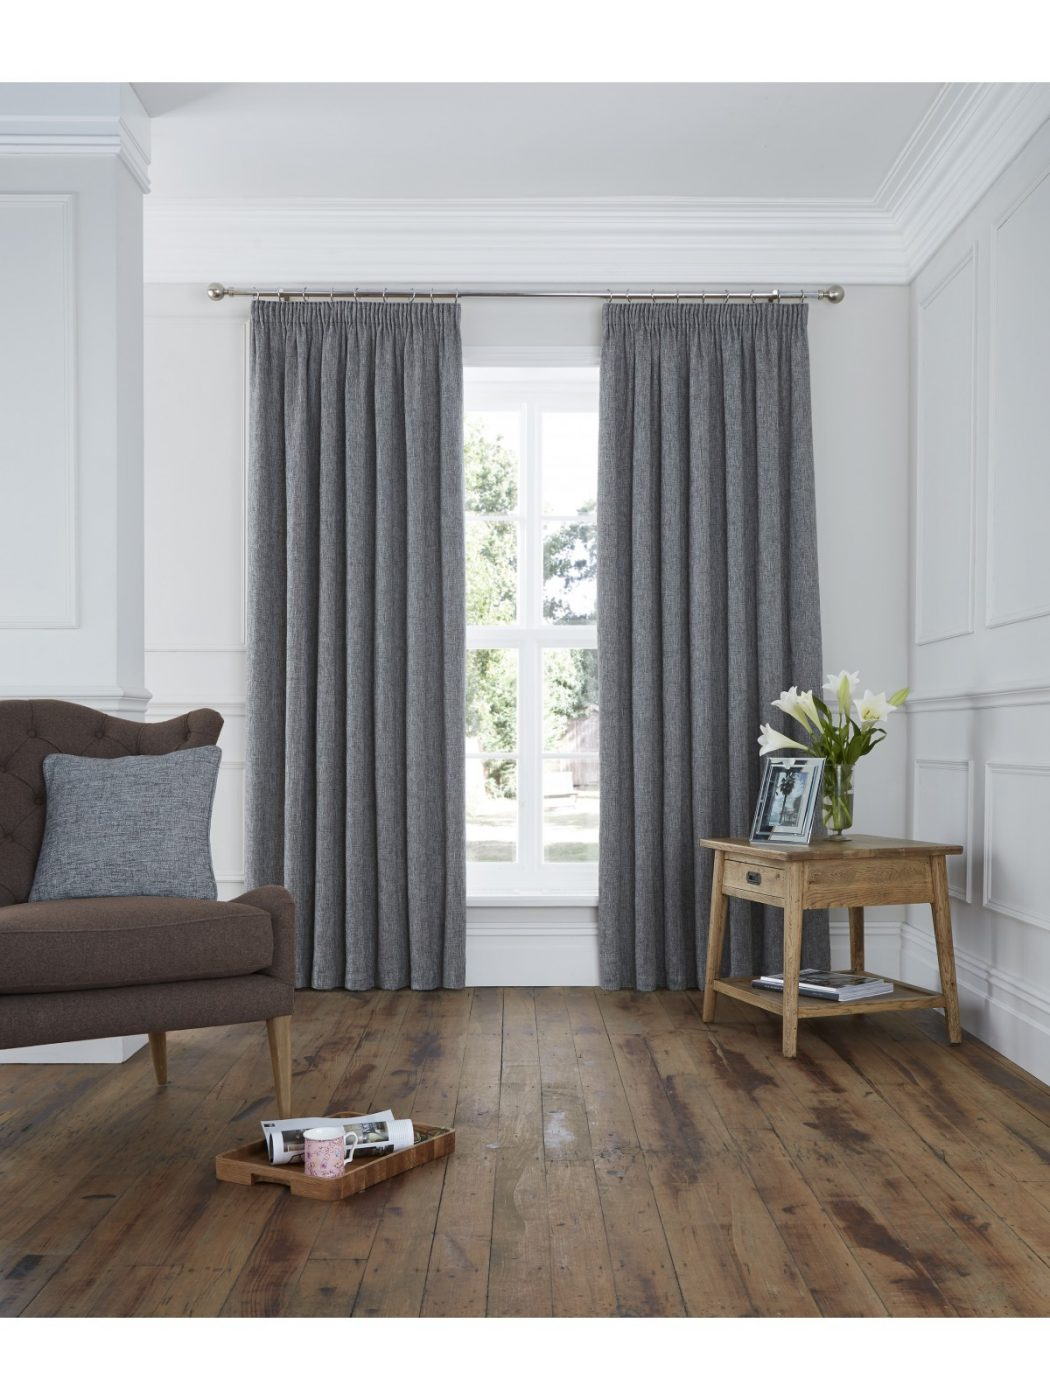 lucerne_plain_pencil_pleat_curtain_grey_1 20 Hottest Curtain Designs for 2017